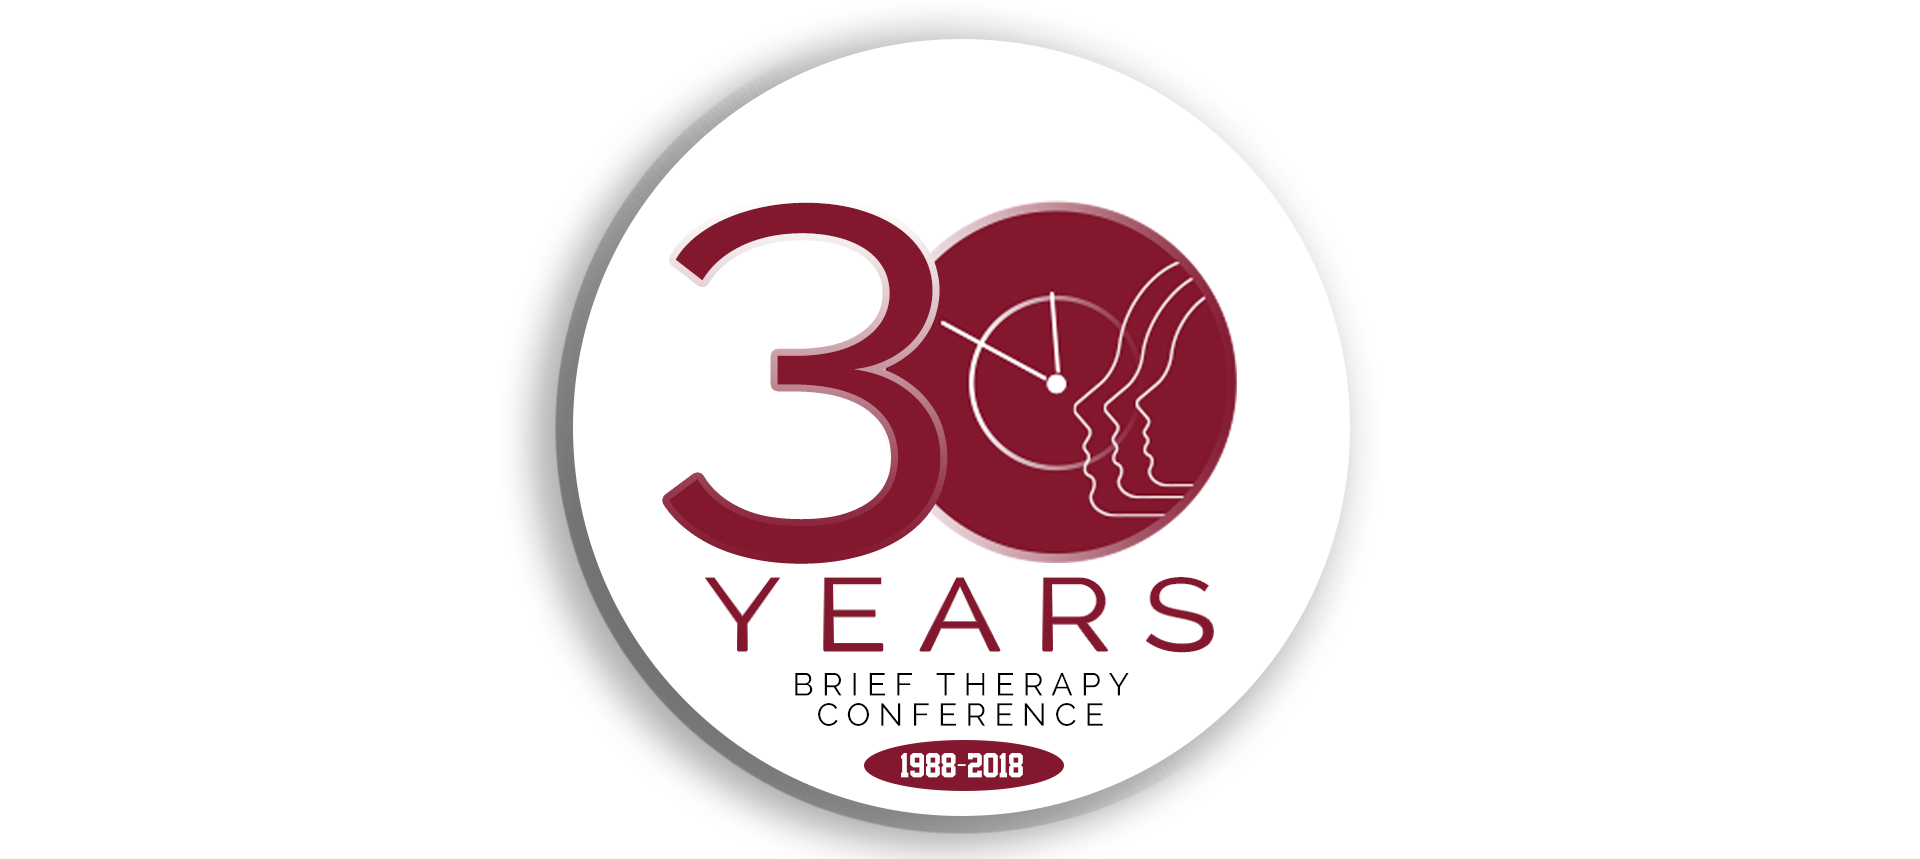 30 Years of Brief Therapy